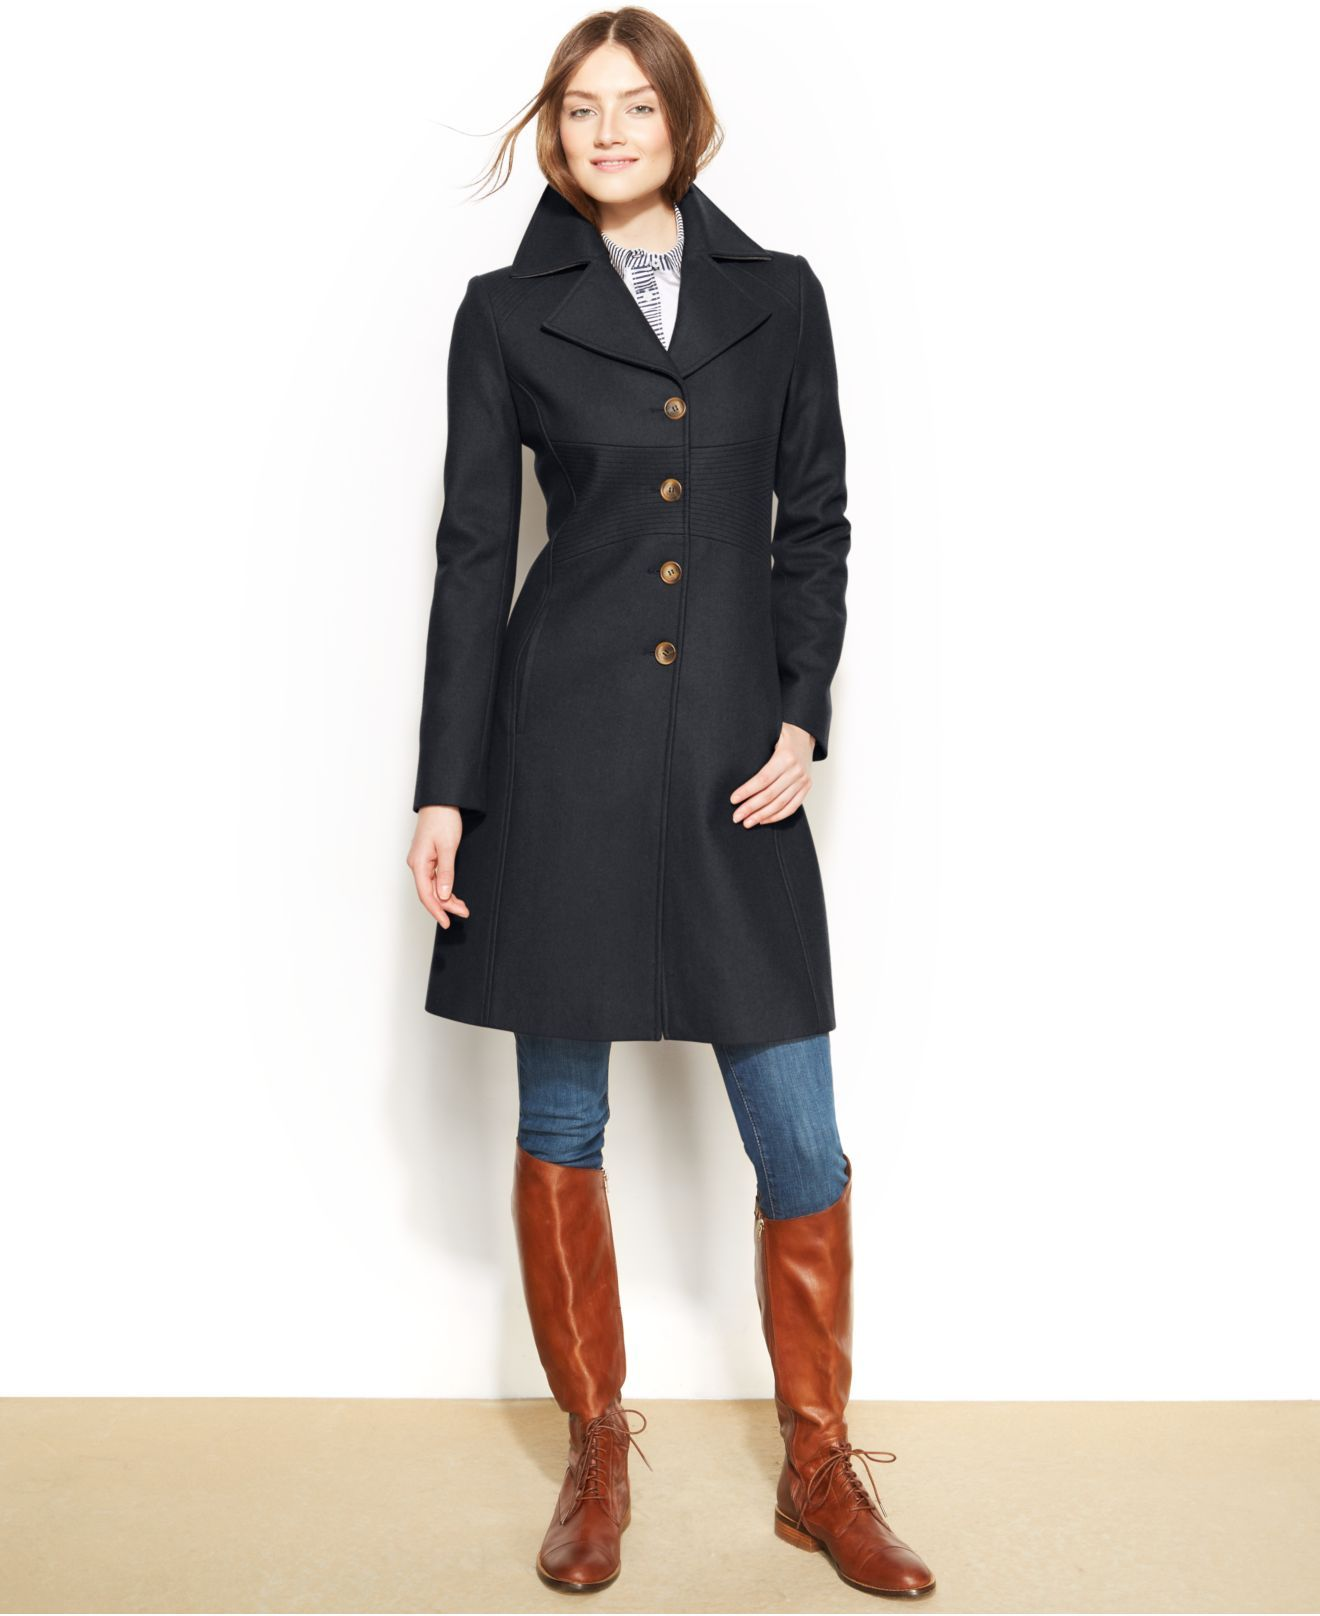 New Tommy Hilfiger Womens Wool Blend Coat Navy Gray NWT